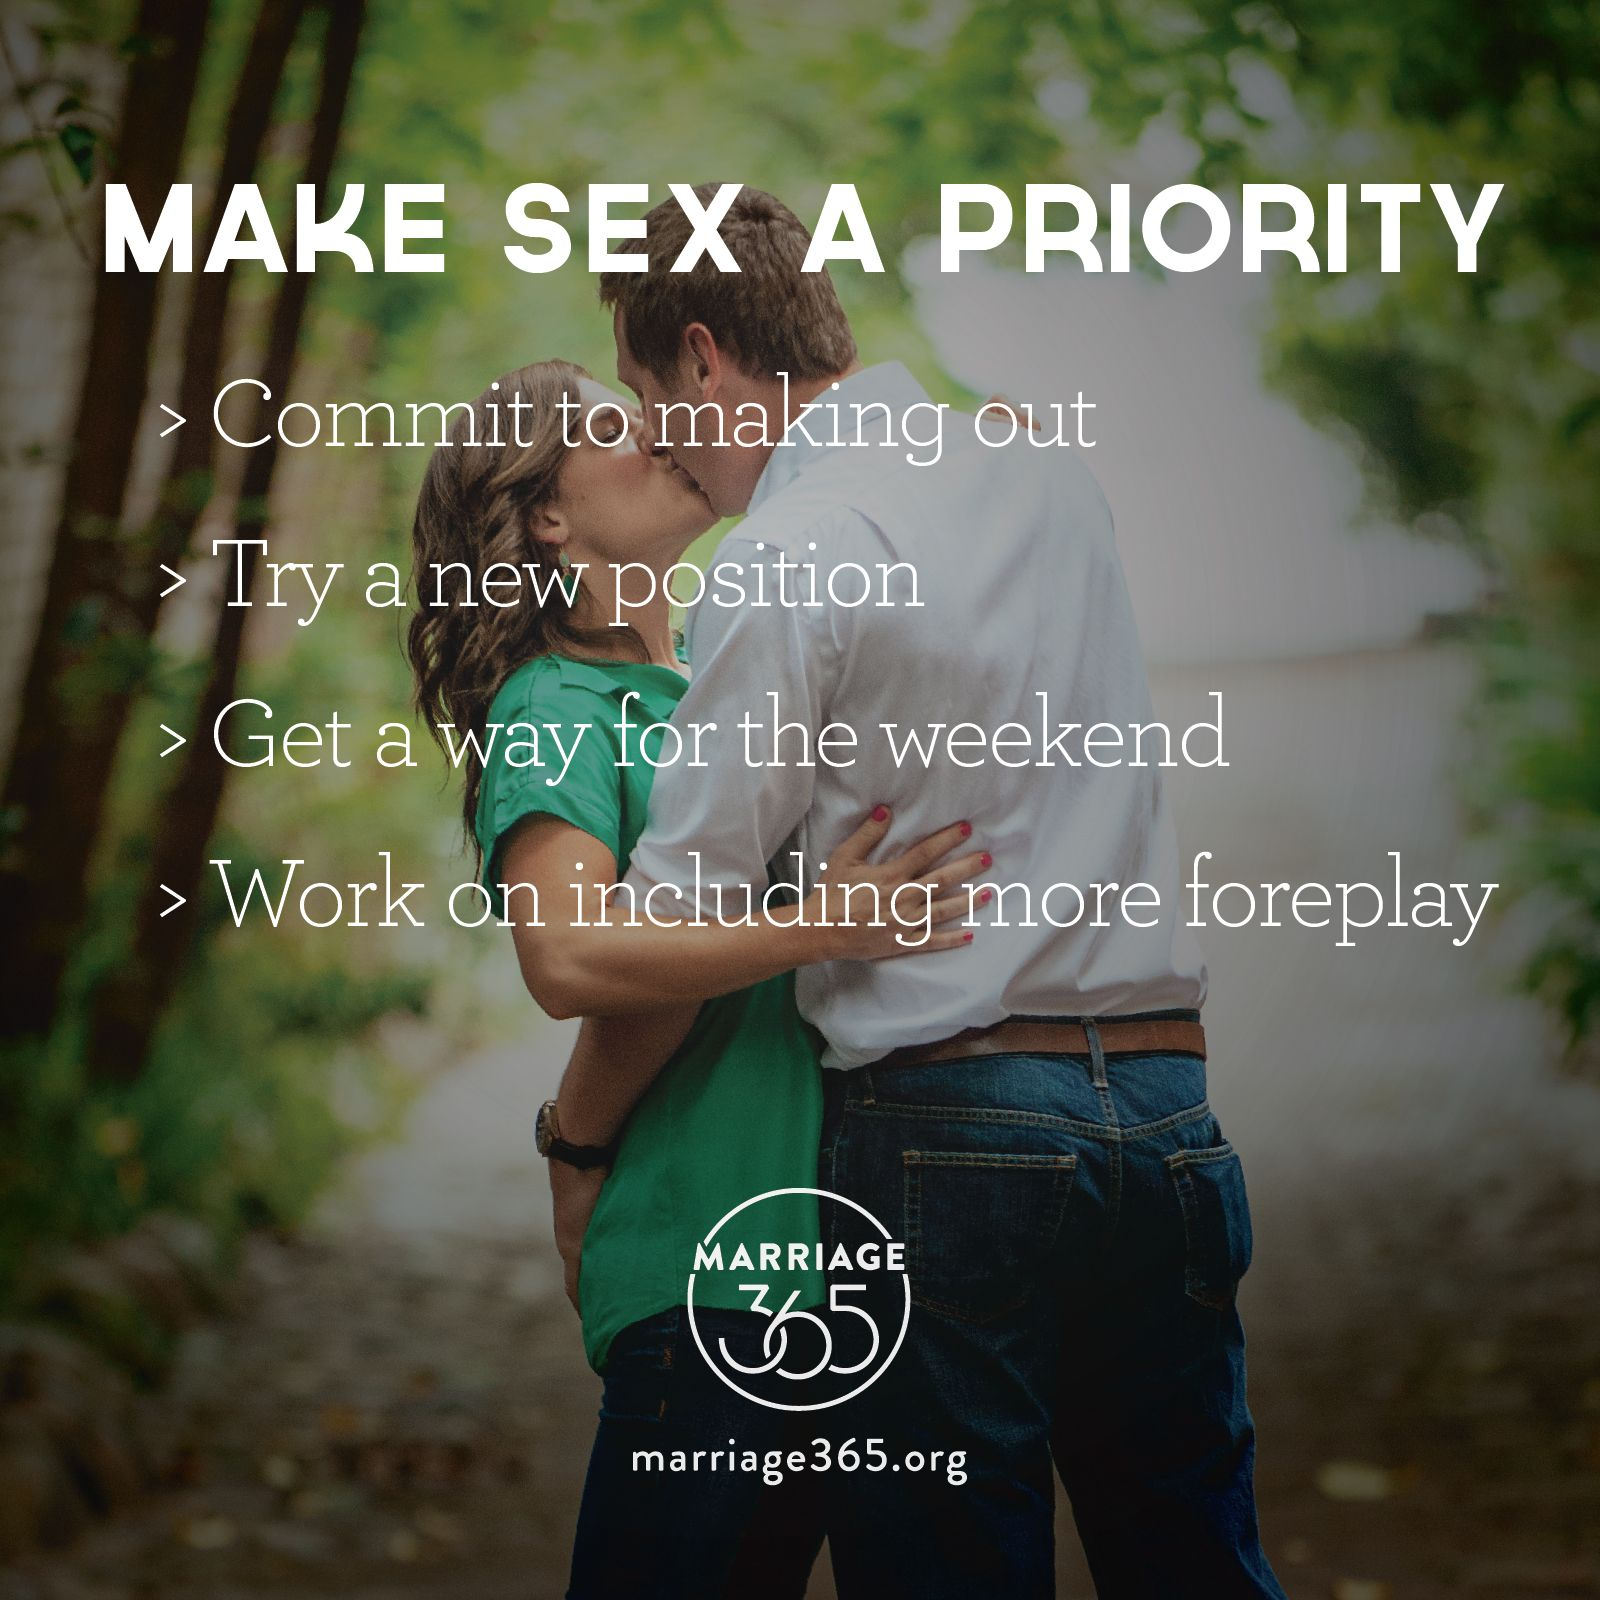 Make Sex A Priority In Your Marriage Seeks To Inspire